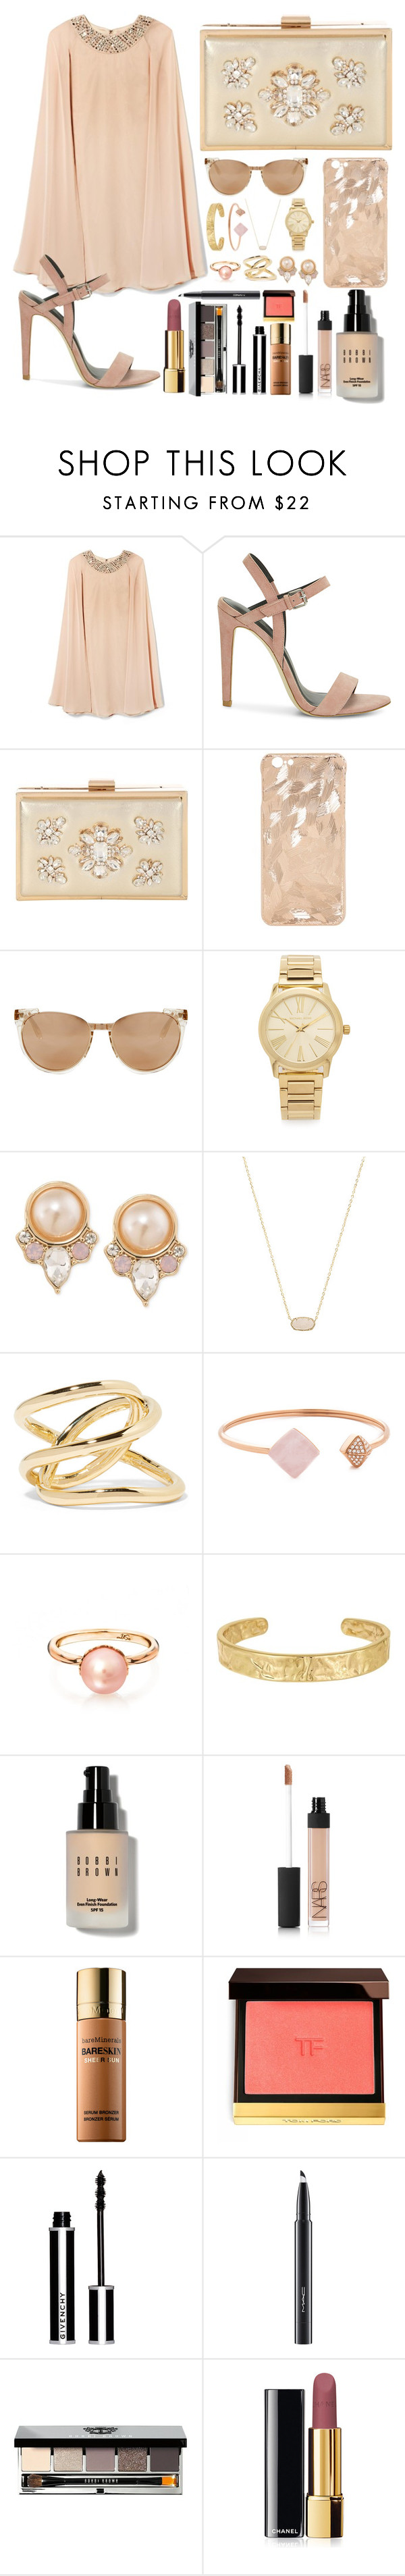 """""""Poor Charlotte"""" by sophiewb ❤ liked on Polyvore featuring Vince Camuto, Rebecca Minkoff, Jane Norman, Linda Farrow Luxe, Michael Kors, Carolee, Kendra Scott, Jennifer Fisher, Sam Edelman and Bobbi Brown Cosmetics"""